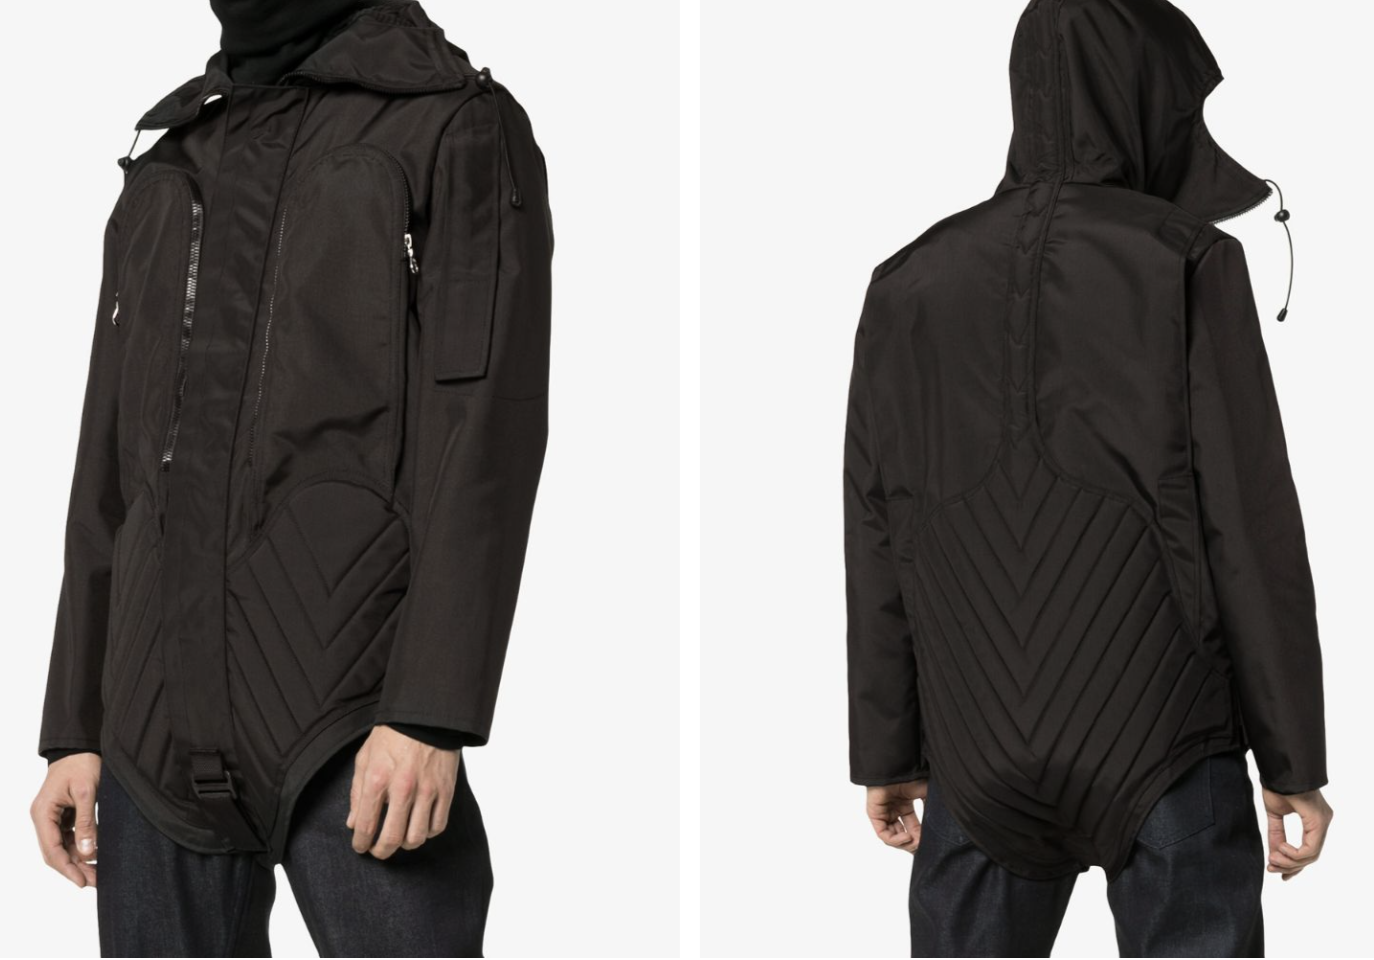 A black parka of military grade padded nylon with a high collar and zippable hood mask.